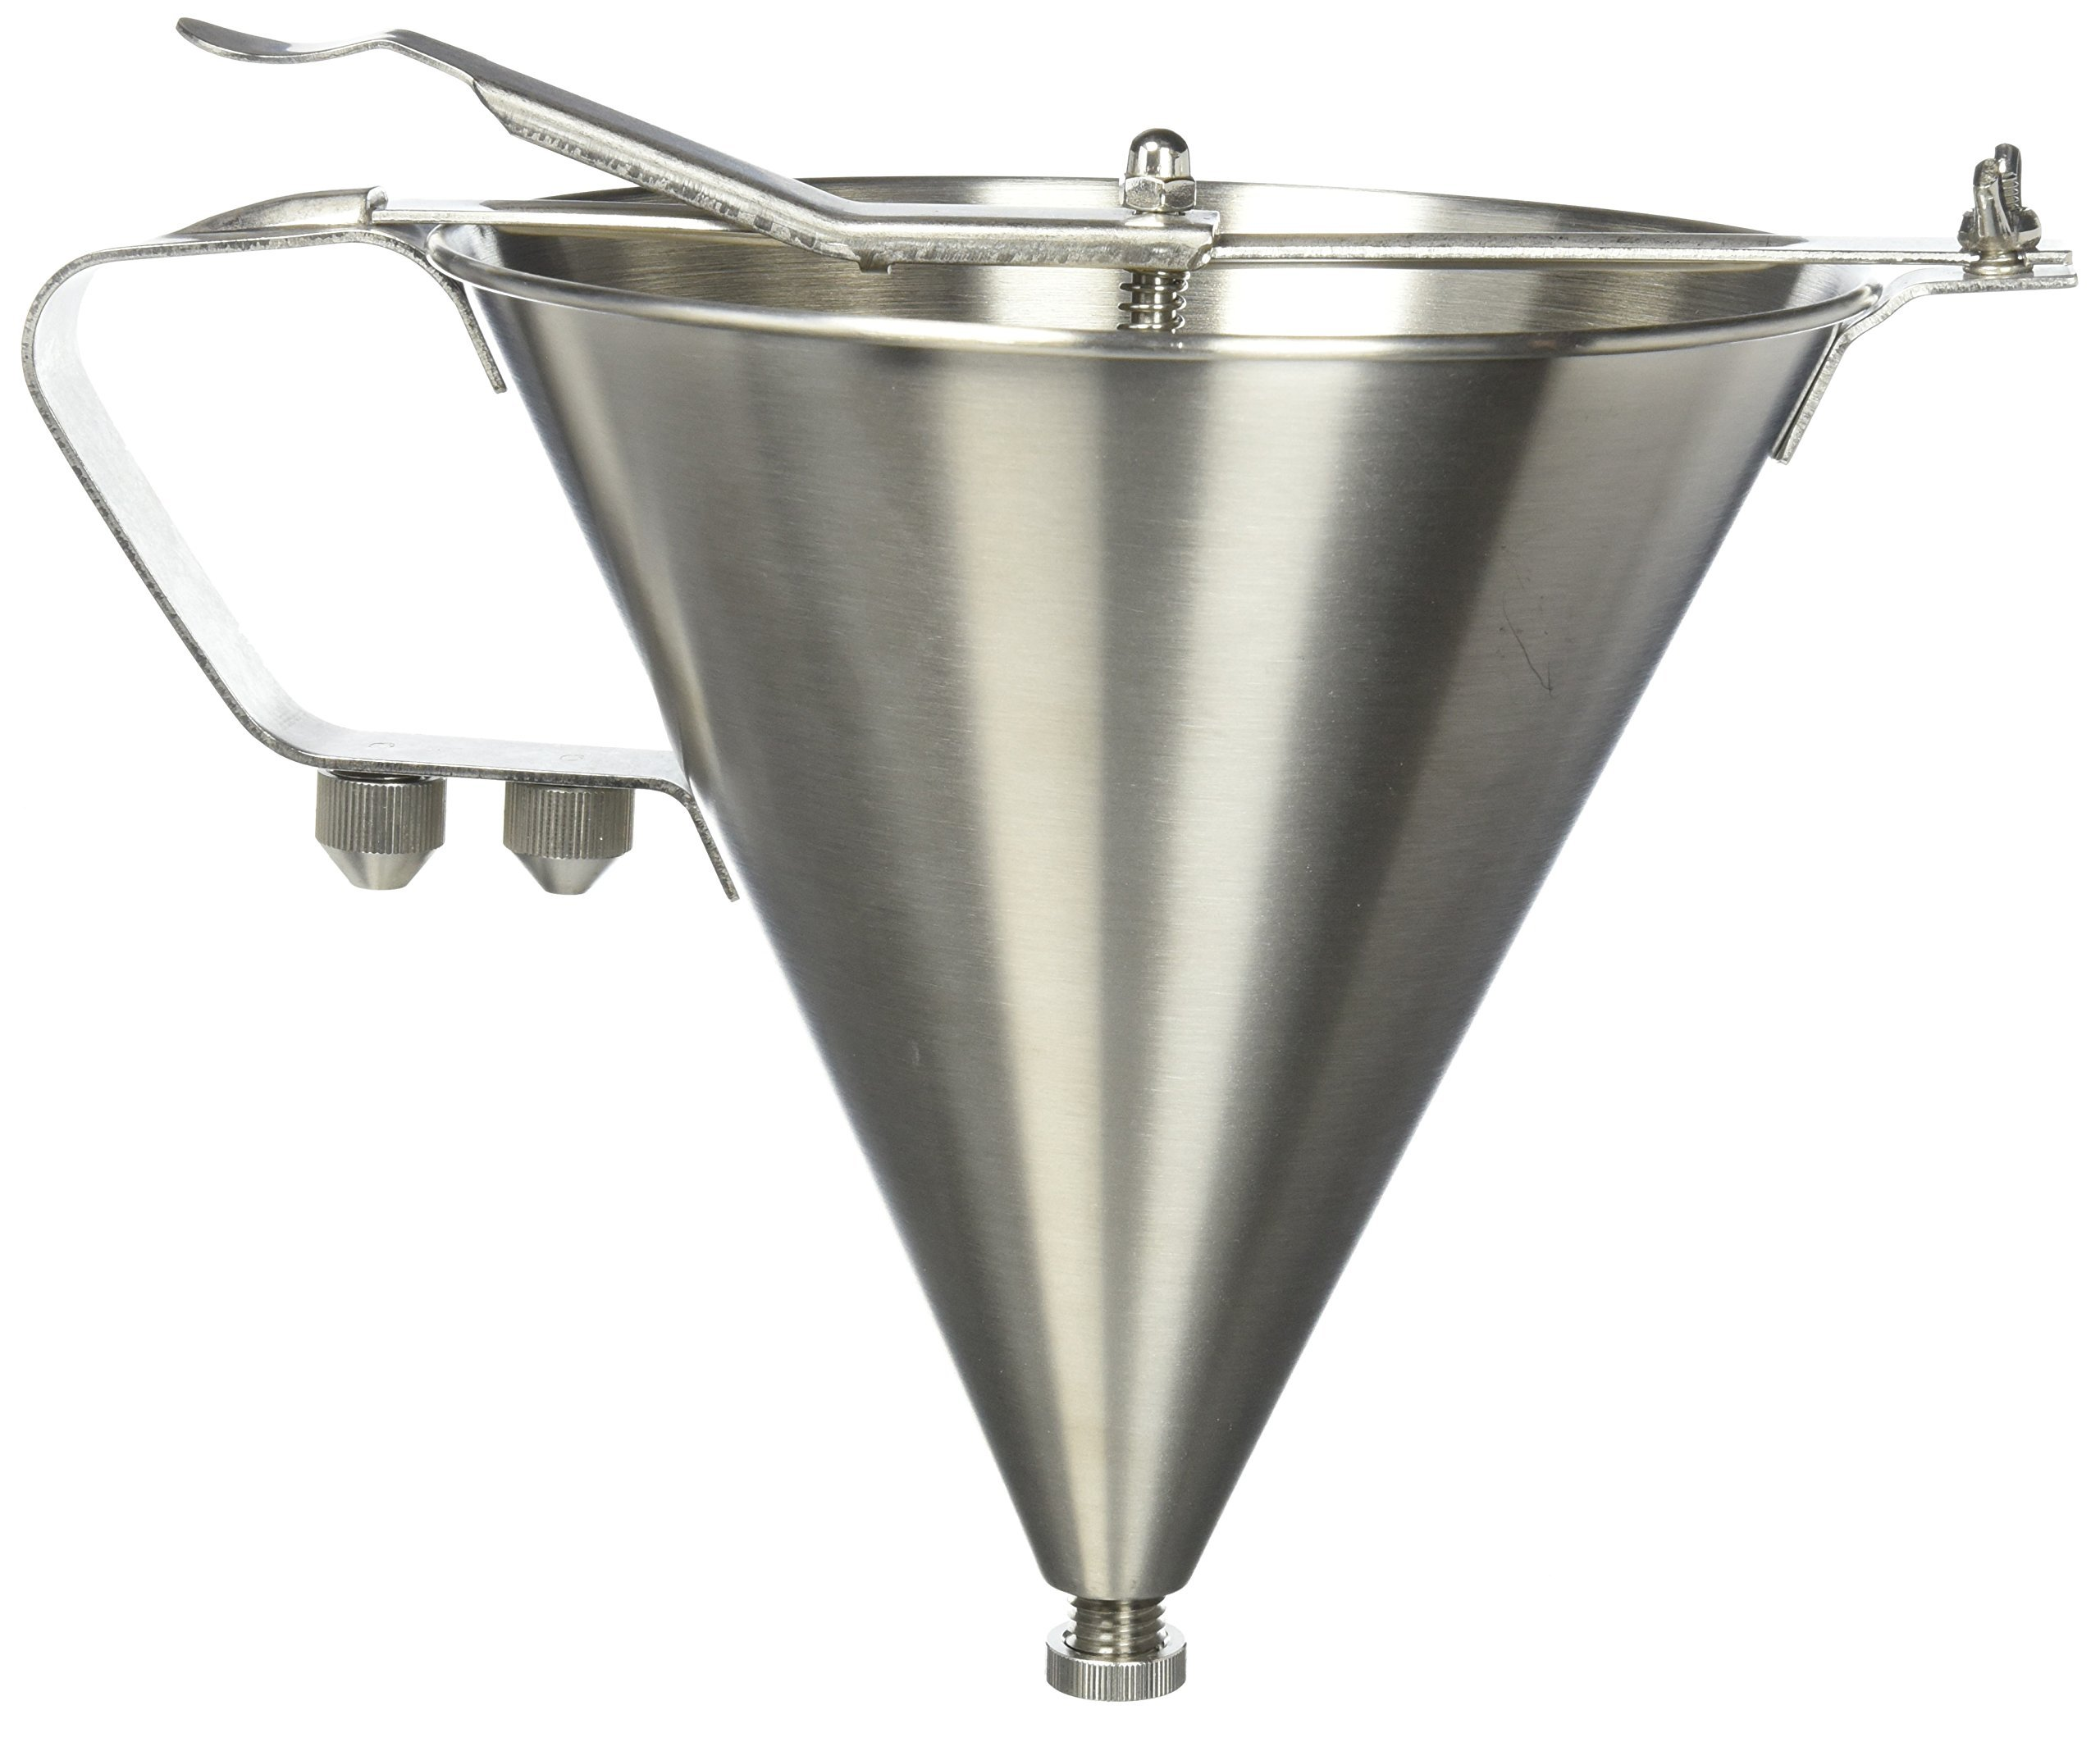 Winco SF-7 Stainless Steel Confectionery Funnel with 3 Nozzles by Winco